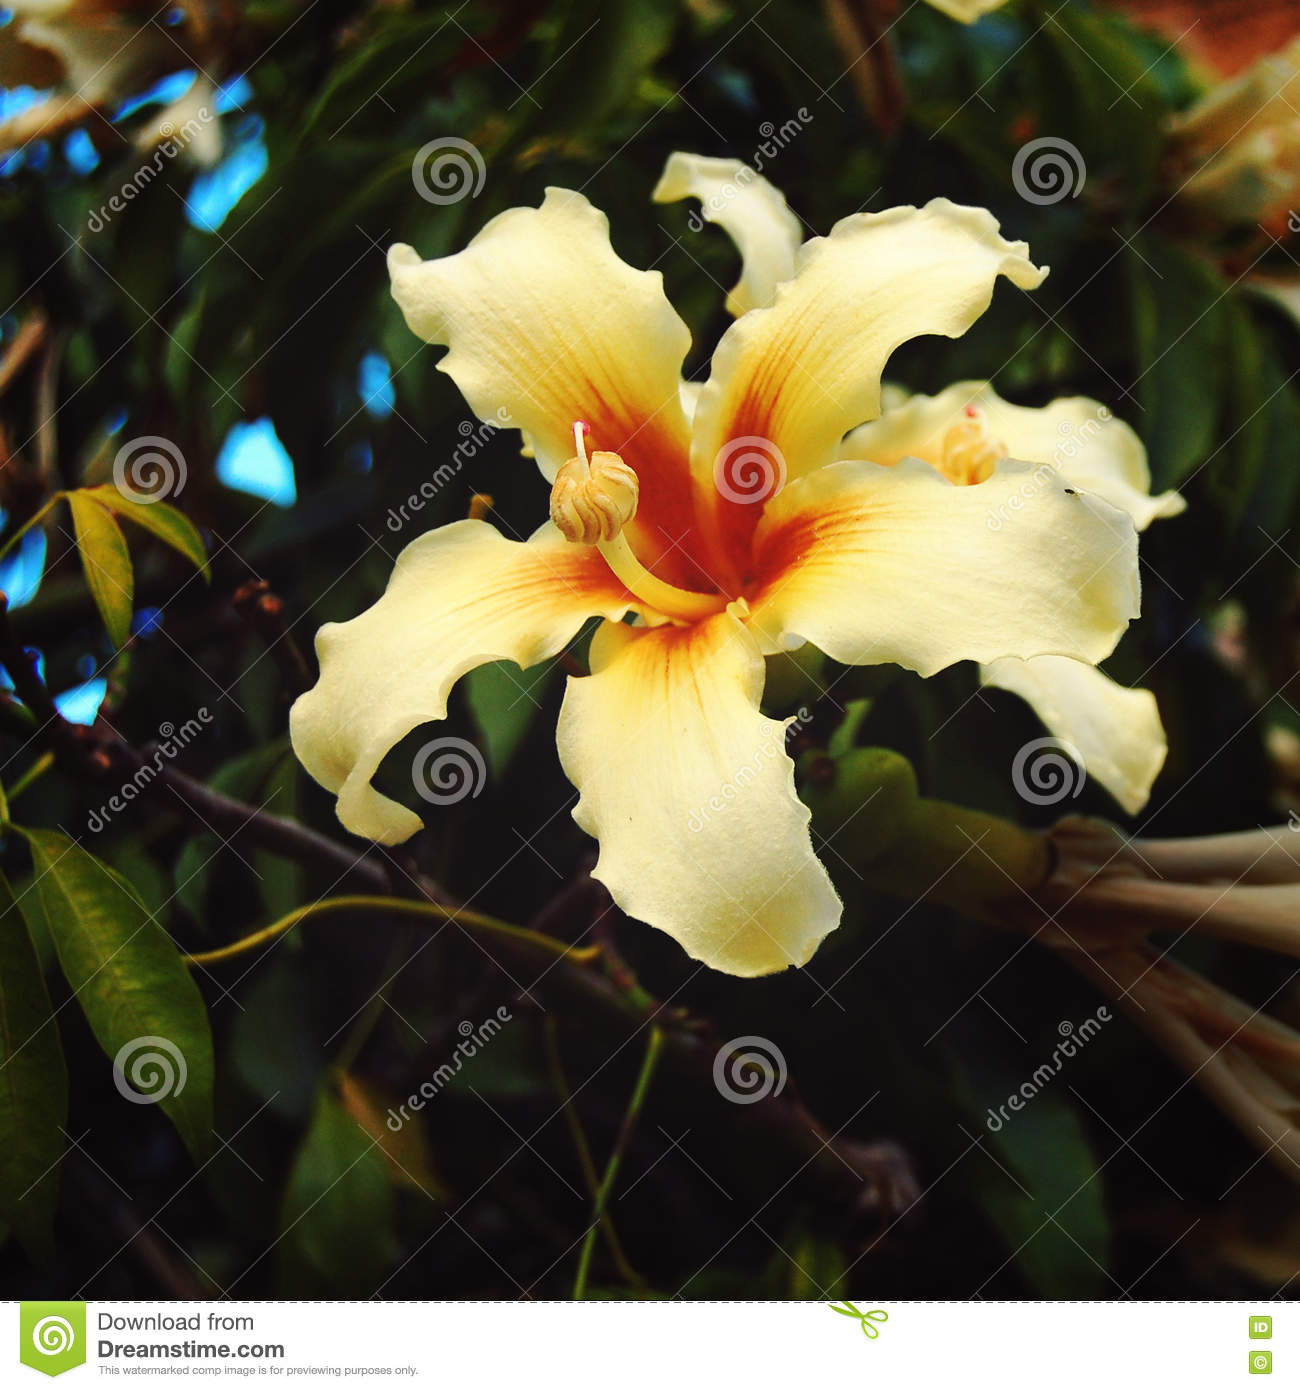 Creamy yellow lily like flower aged photo ceiba stock image royalty free stock photo izmirmasajfo Image collections